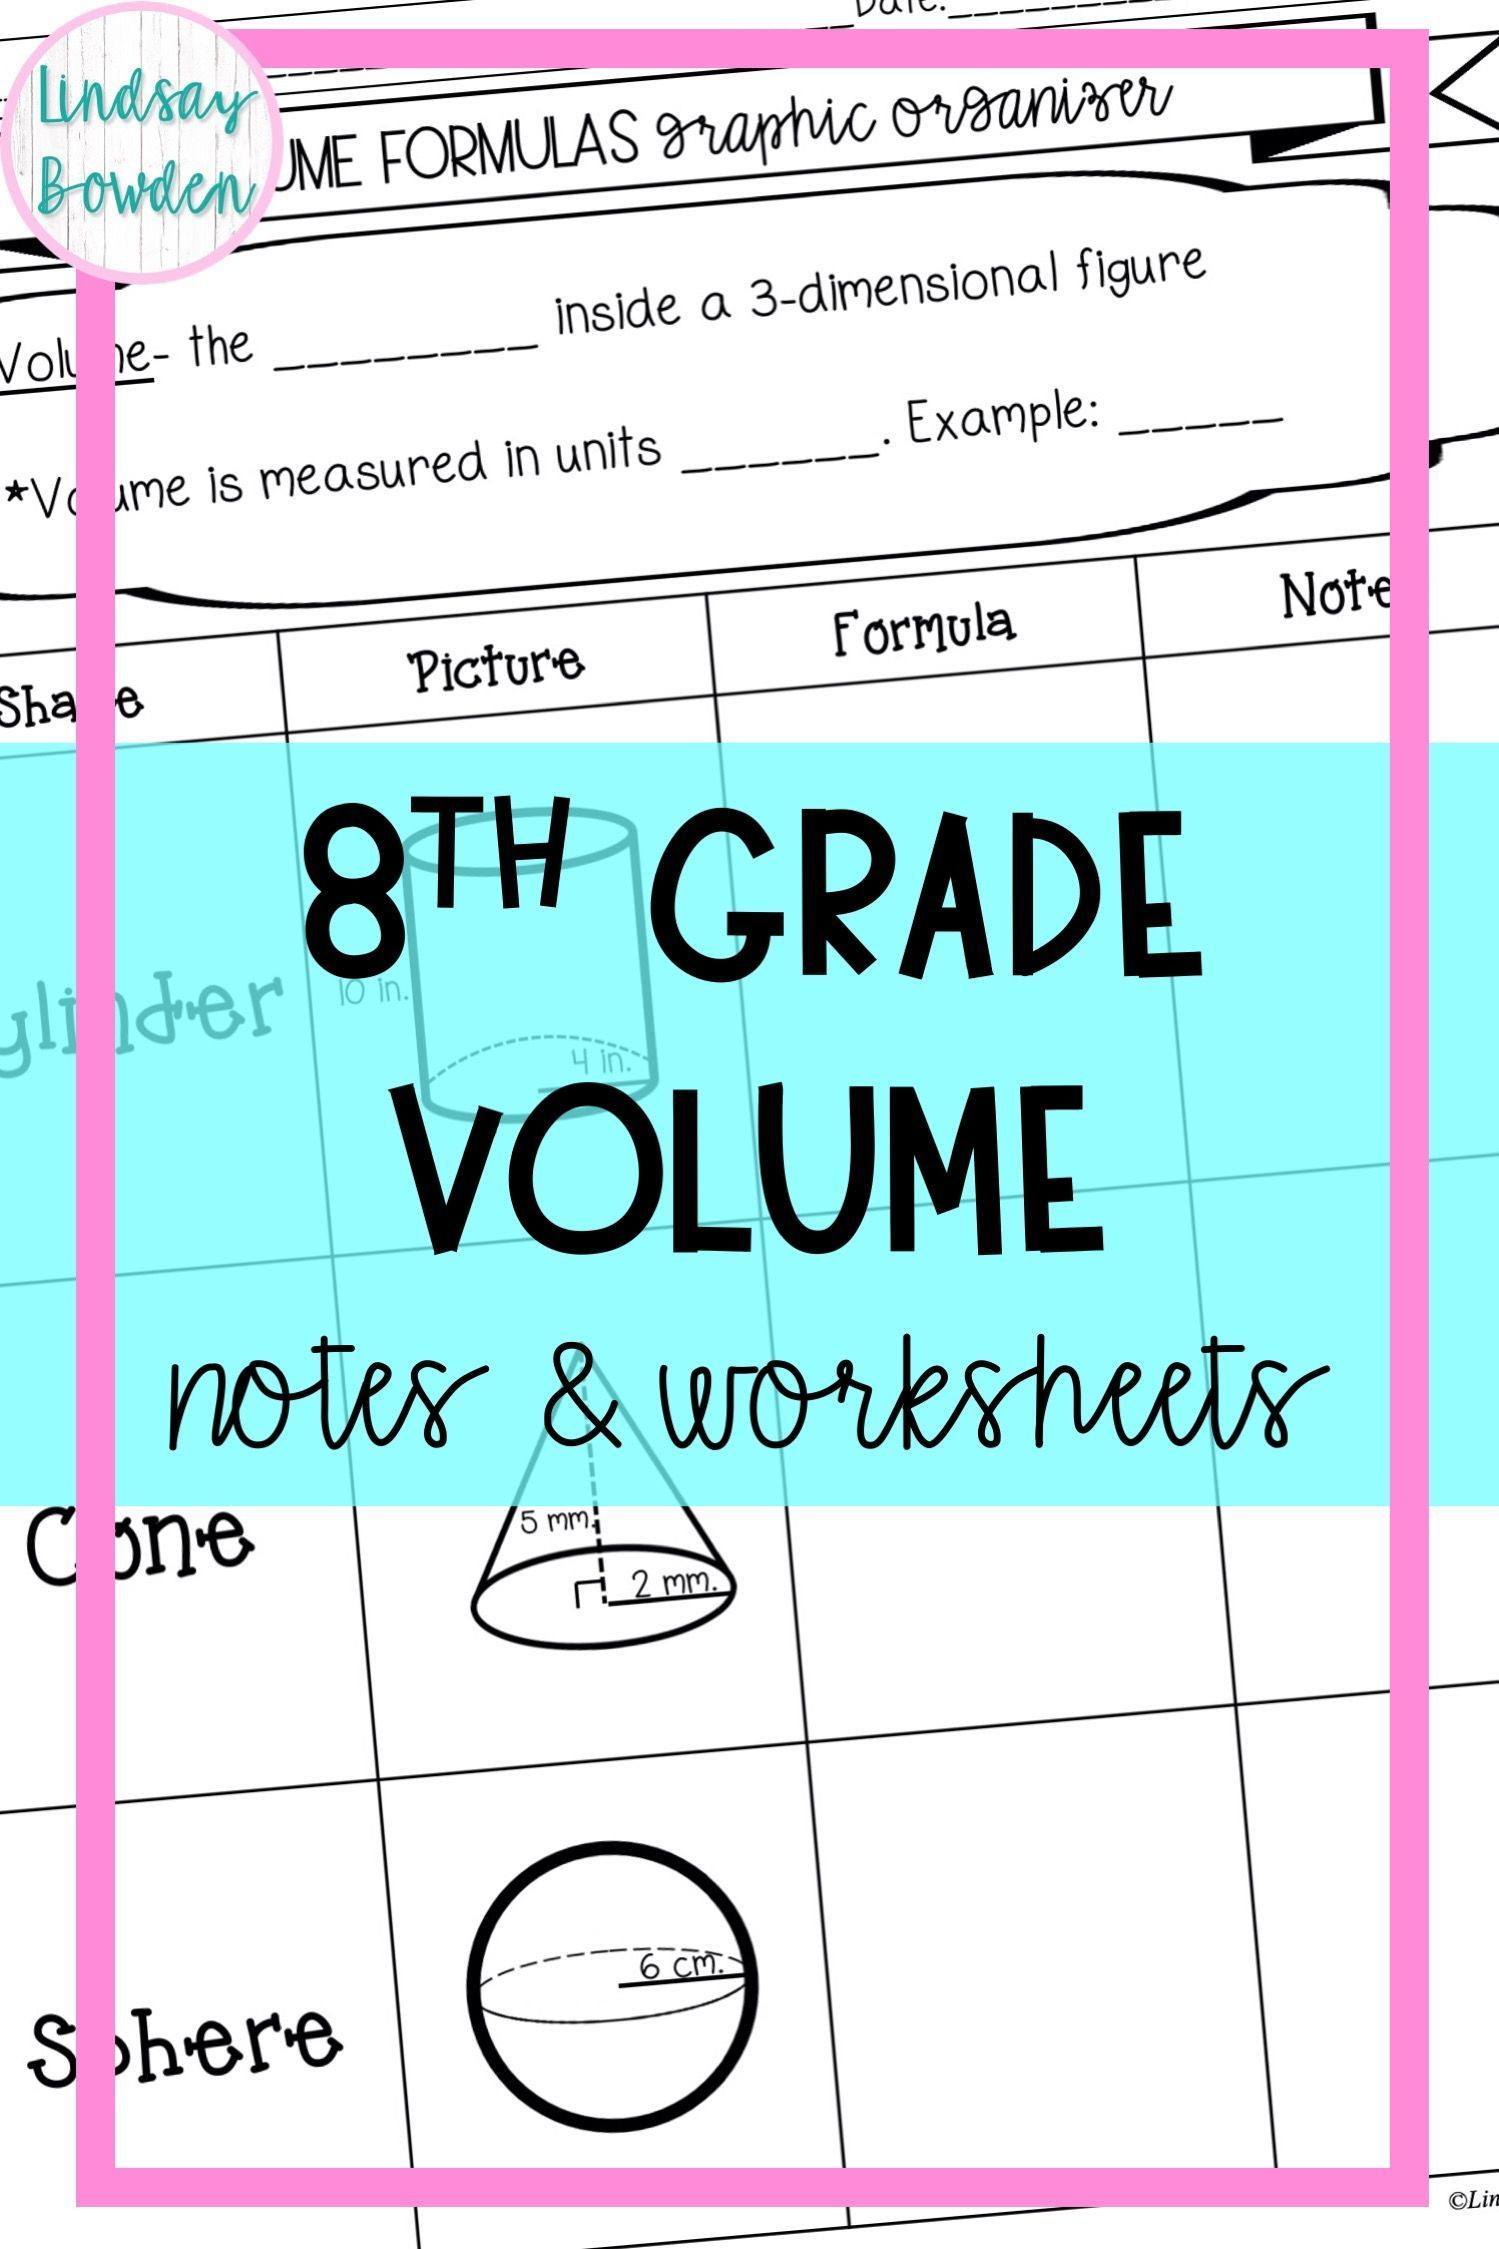 small resolution of Volume Notes and Worksheets (8th Grade)   Middle school math resources